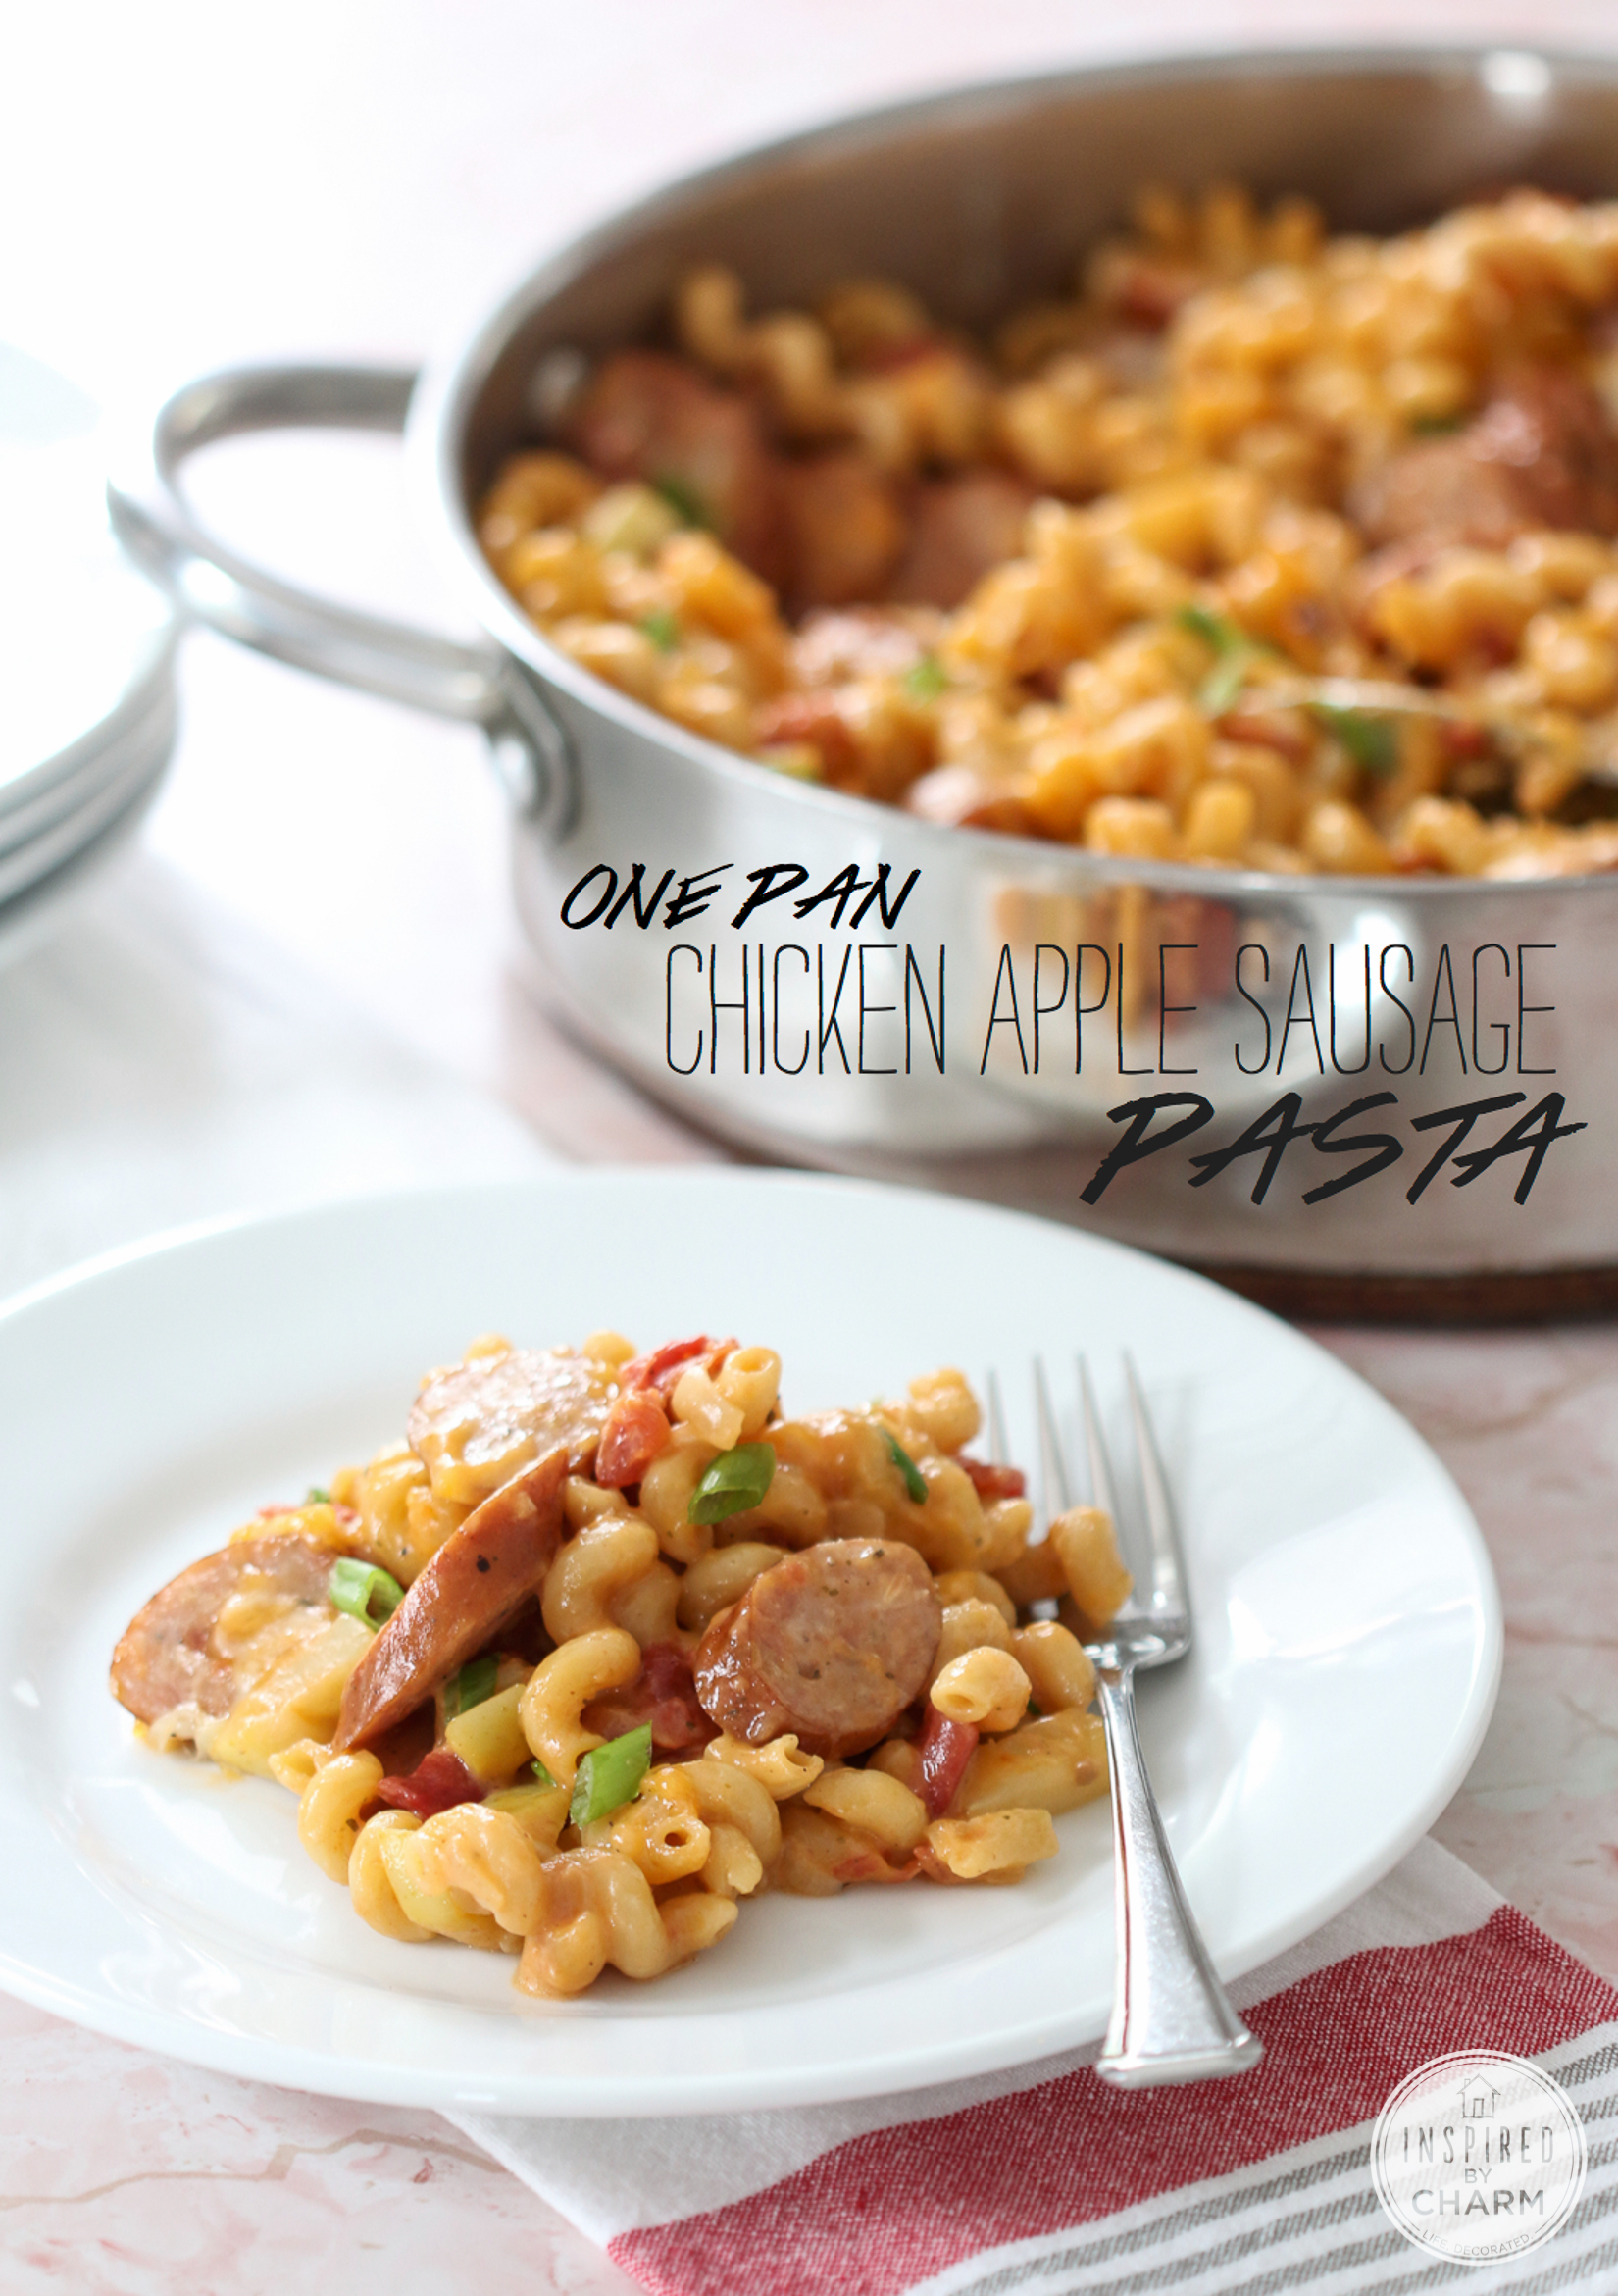 One Pan Chicken Apple Sausage  Inspired By Charm